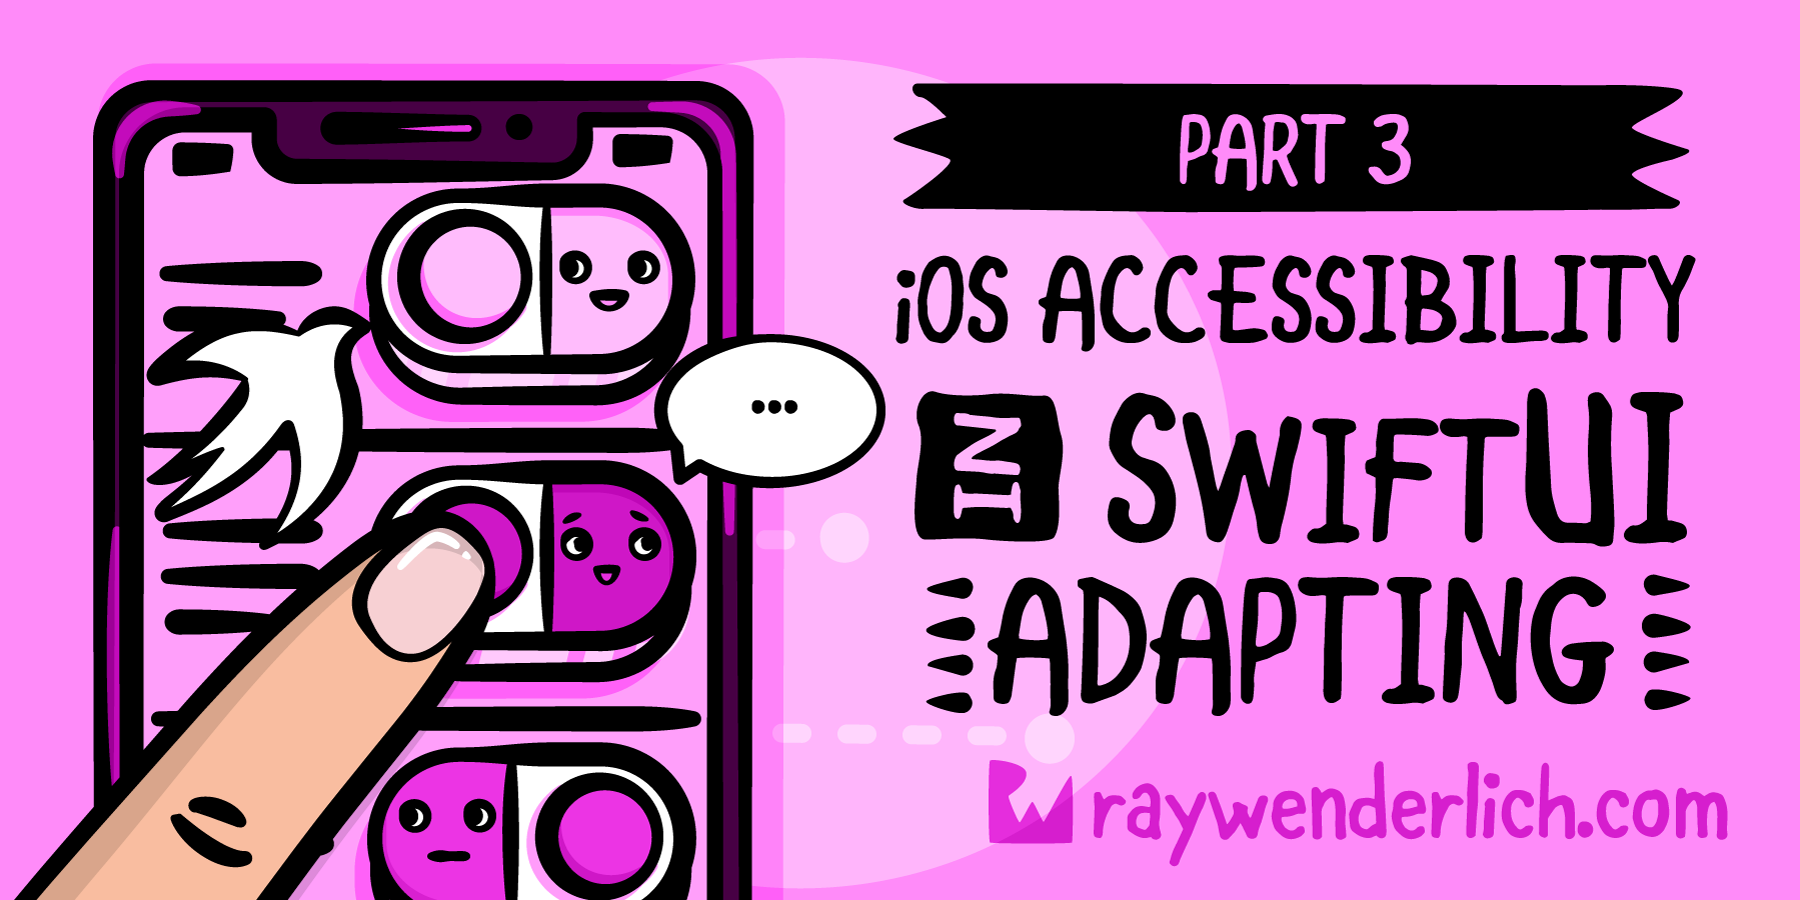 iOS Accessibility in SwiftUI Tutorial Part 3: Adapting [FREE]